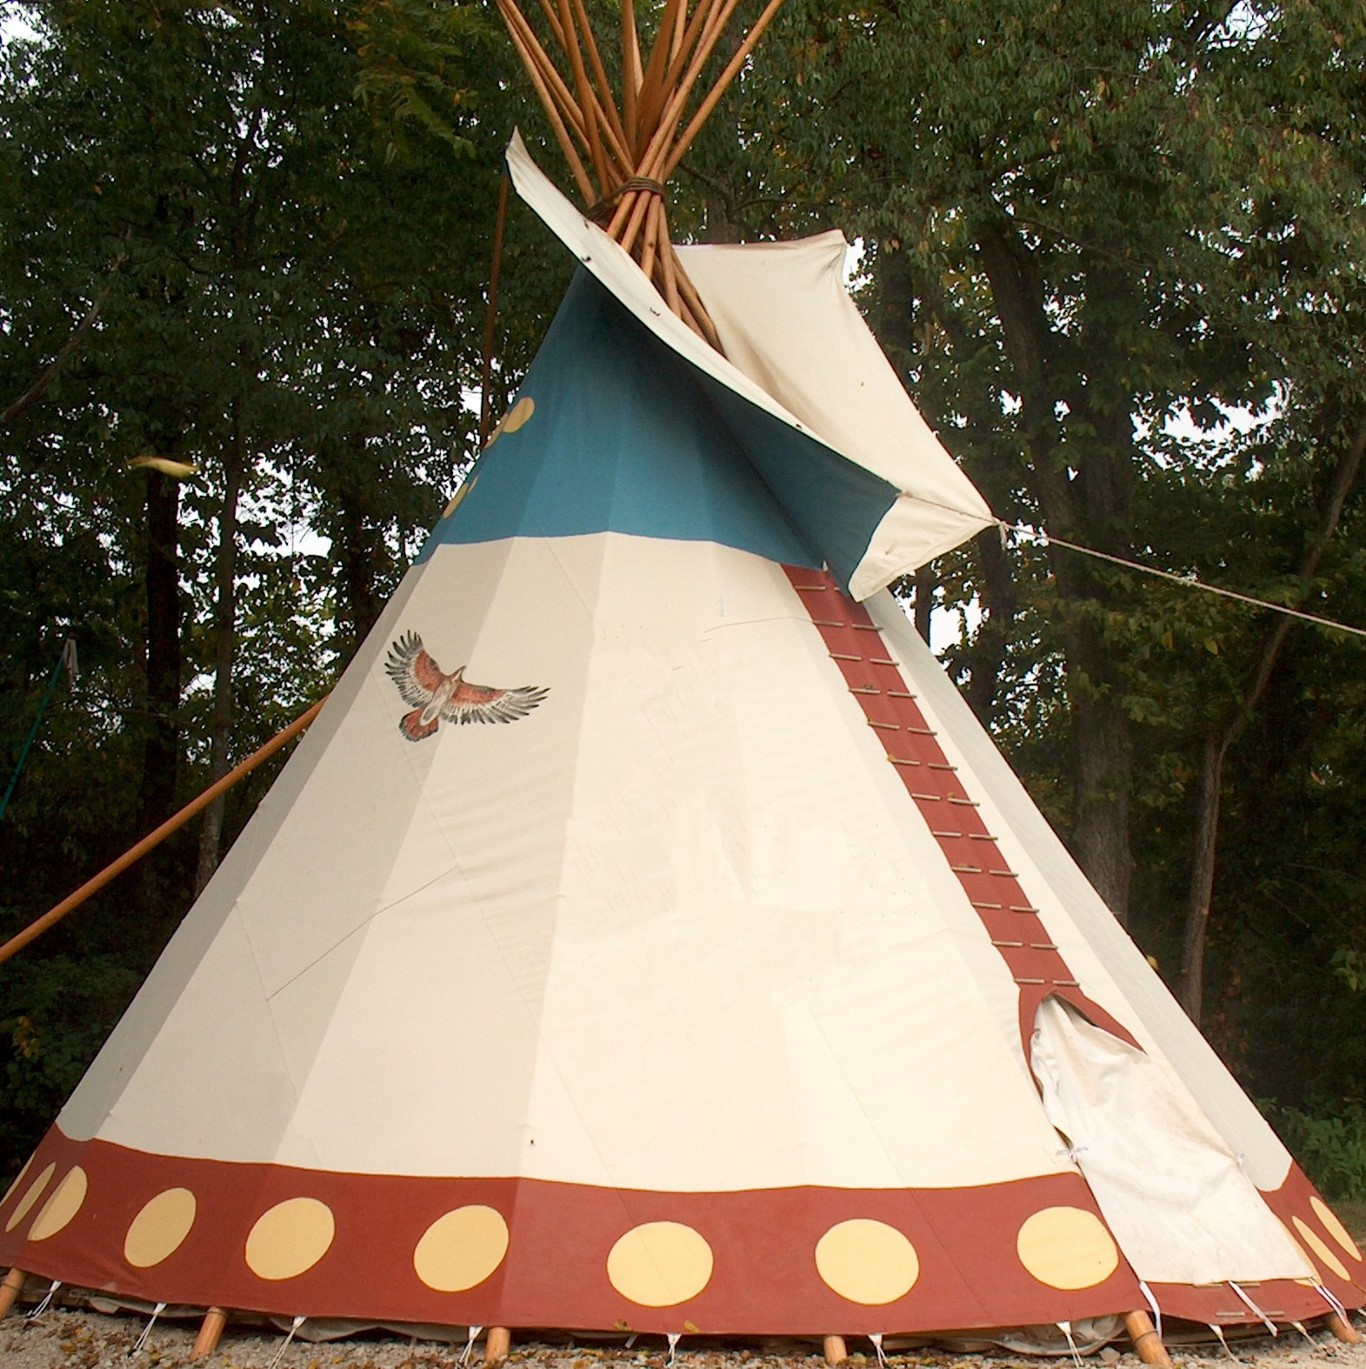 Tipi Teepee C&ing in Hocking Hills - Very romantic and something totally unique ... & At Boulders Edge Tipi Retreat - Hocking Hills Campgrounds